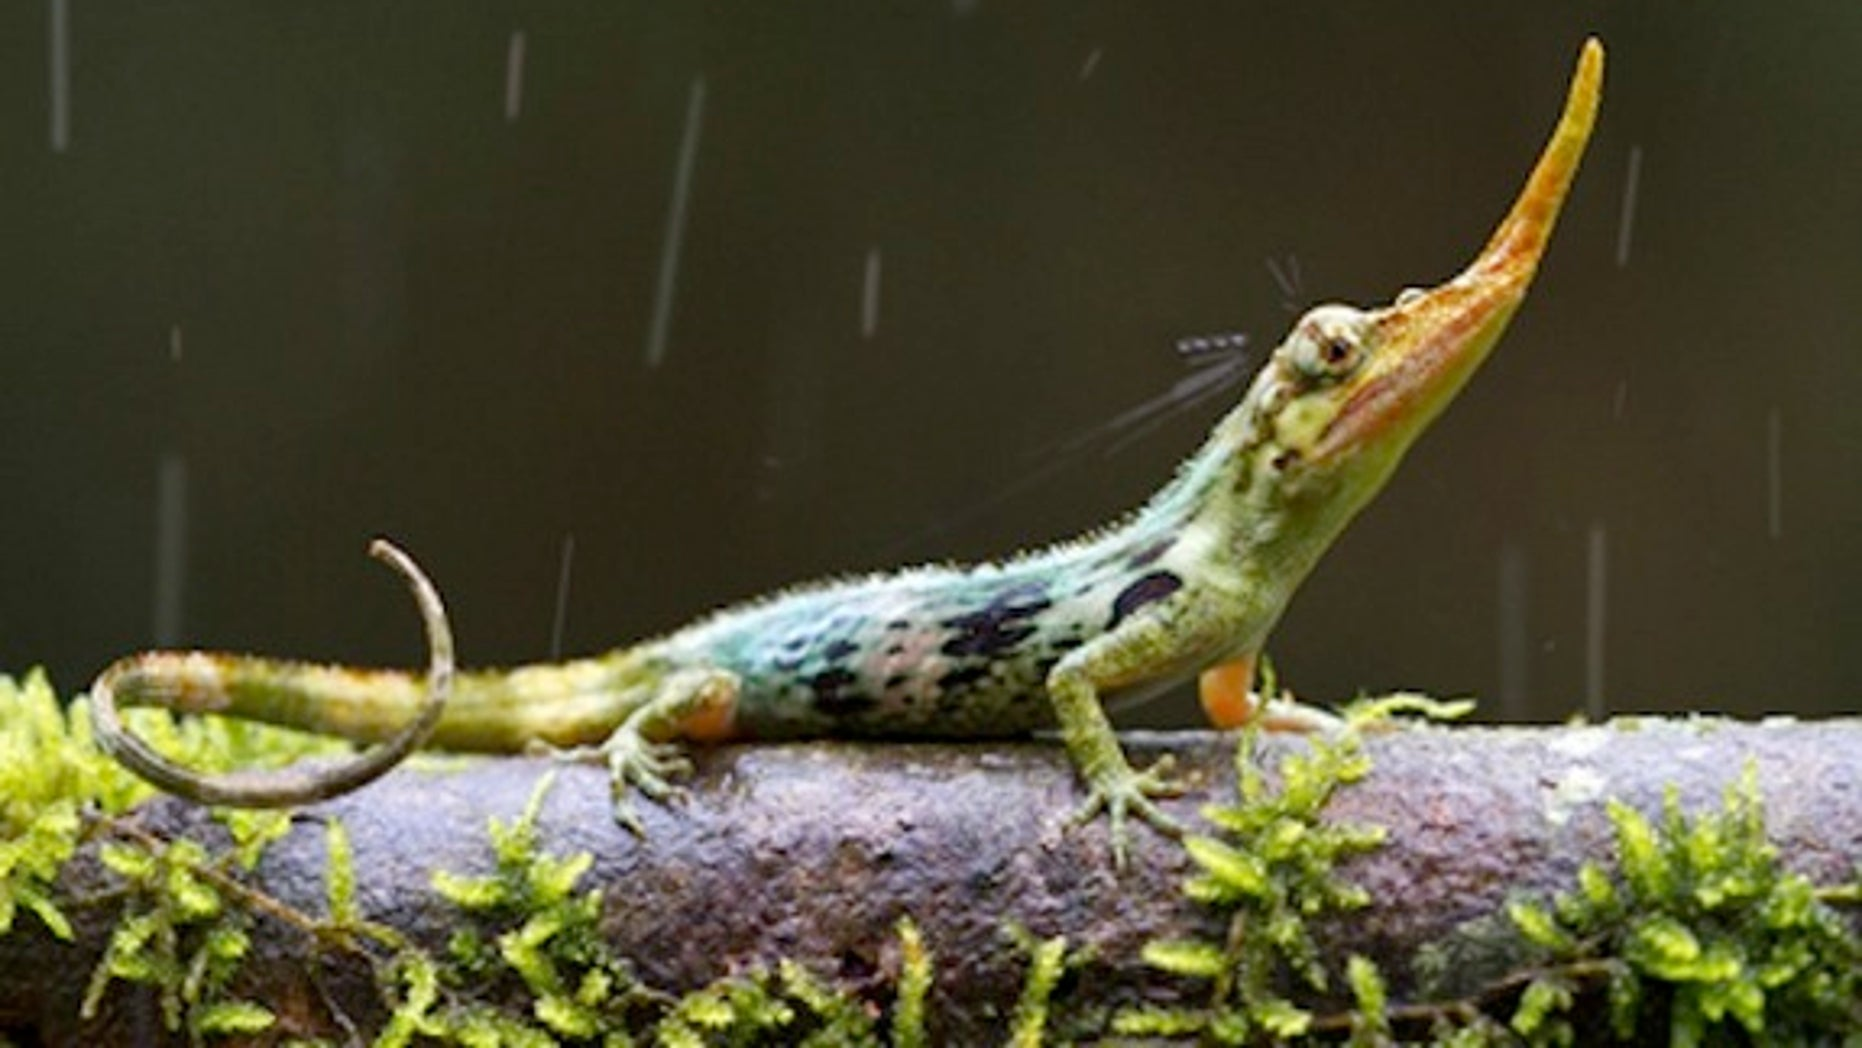 Pinocchio anoles were thought to be extinct for about 50 years before being recently rediscovered in the cloud forests of northwest Ecuador.